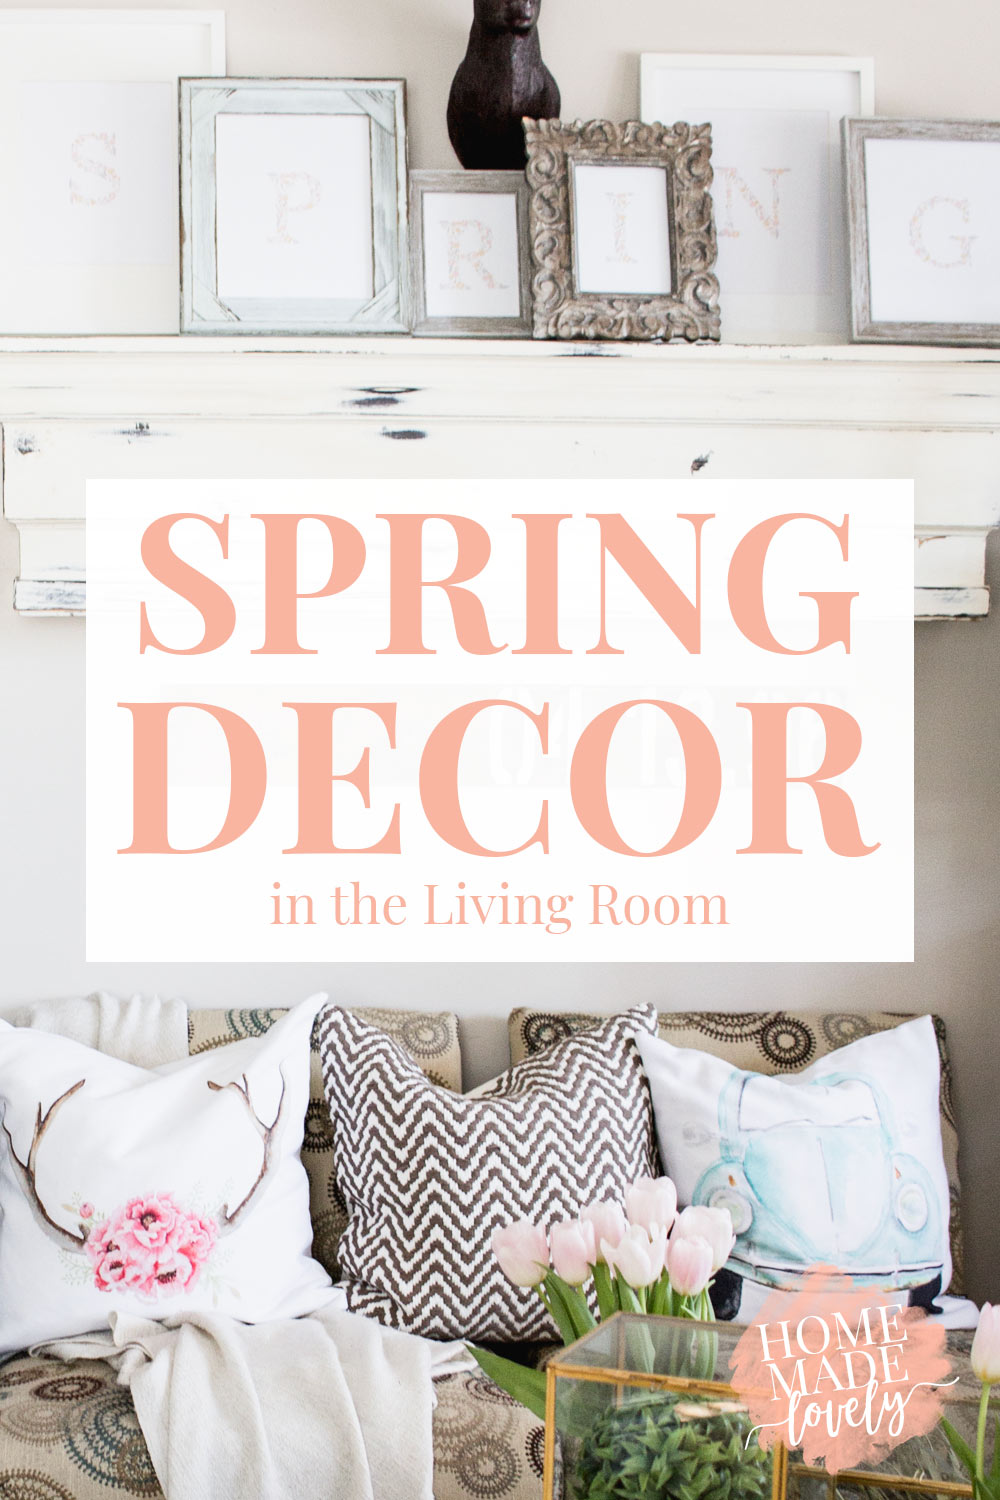 Spring is coming. And since Spring is coming, I decided it was time to do a little Spring decorating in the living room with flowers & moss & color!